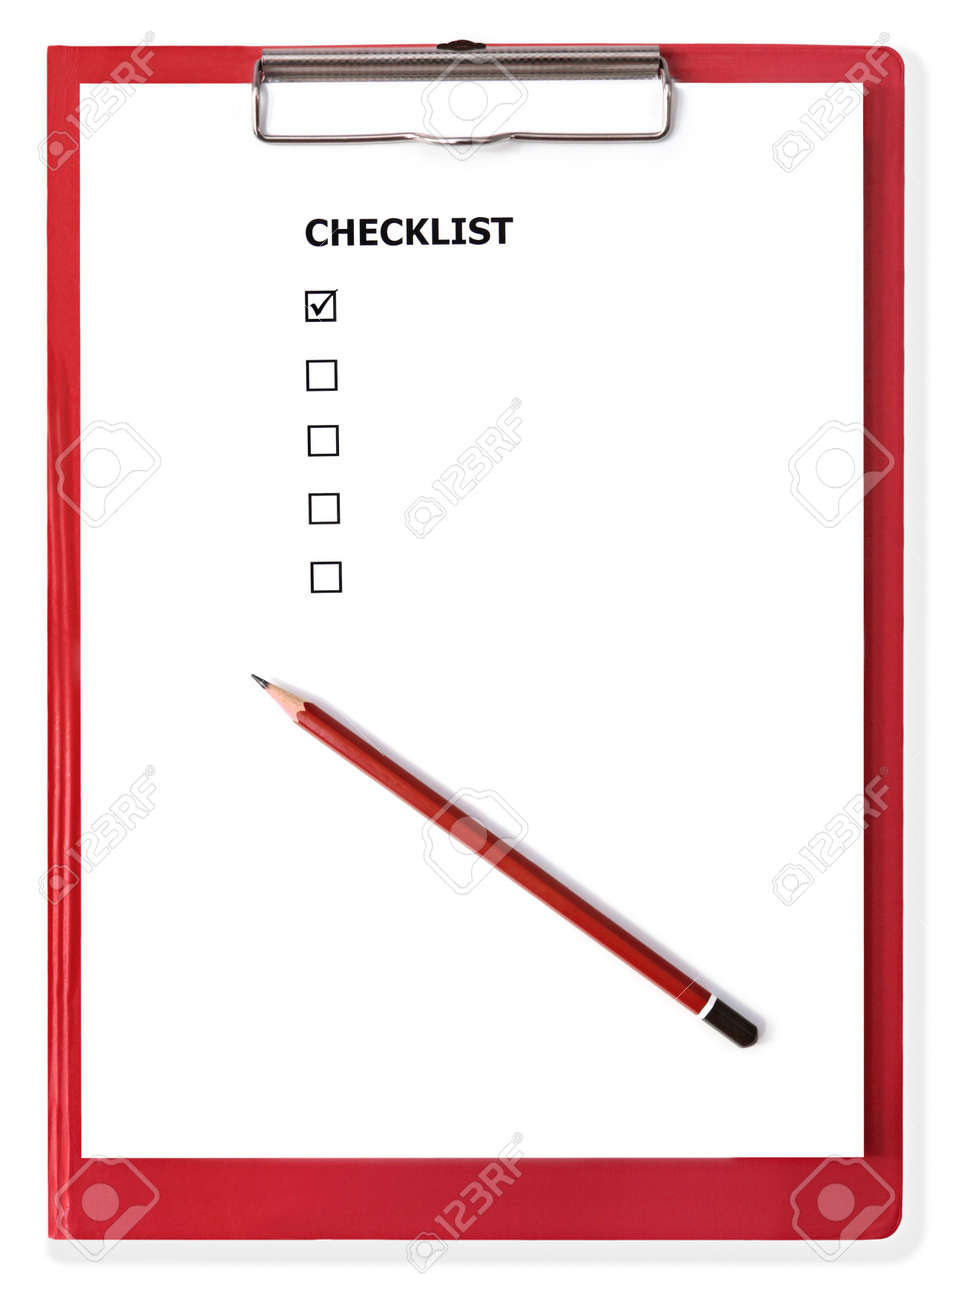 red clipboard with blank checklist stock photo, picture and royalty